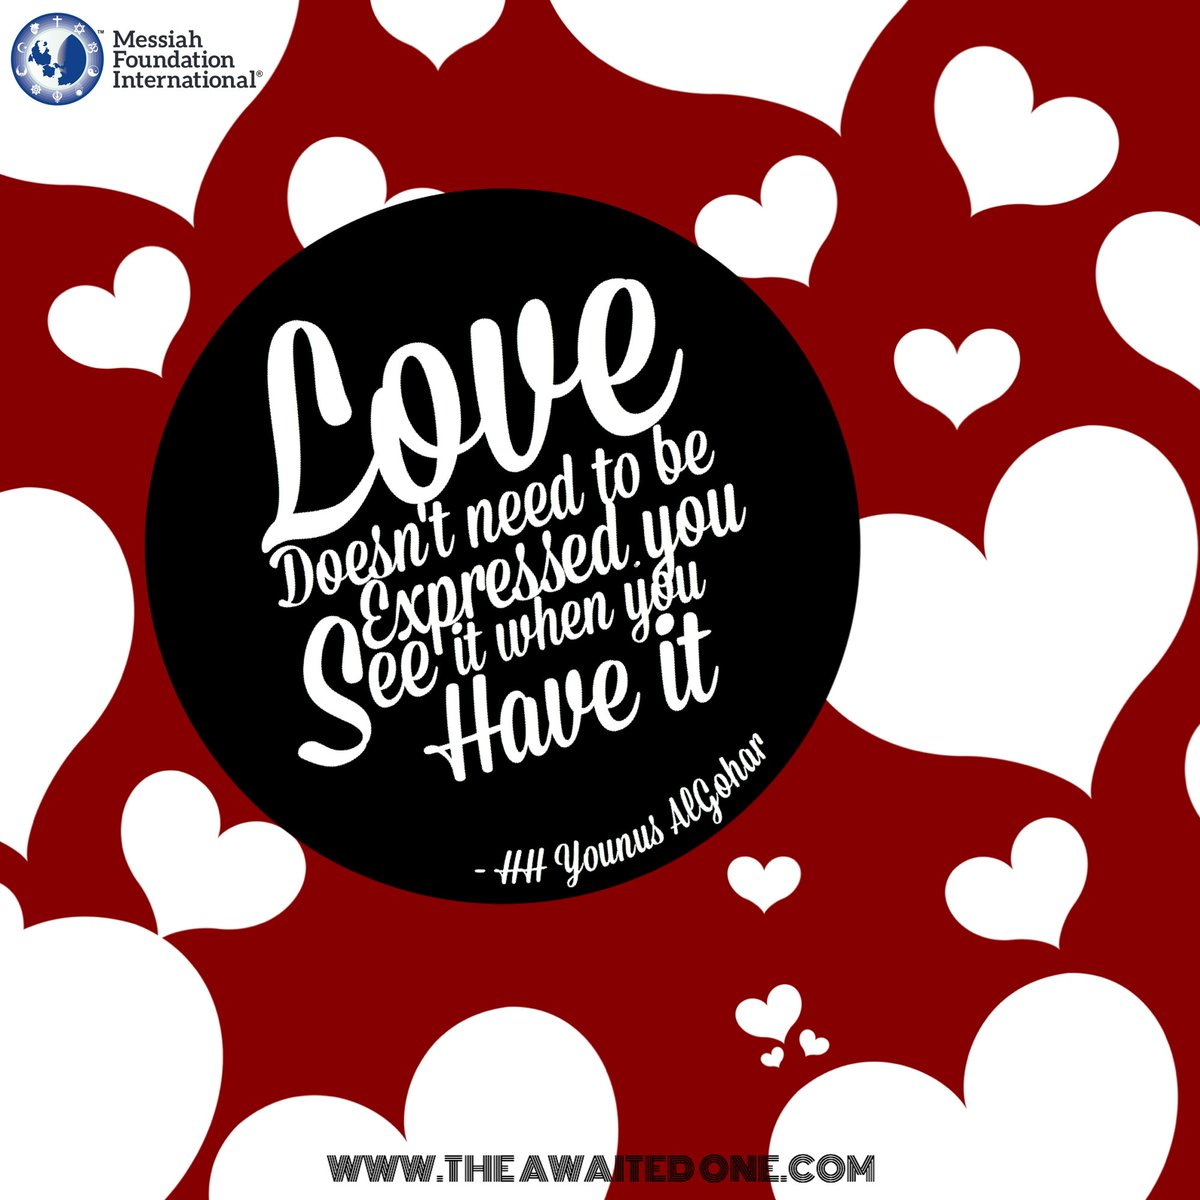 #QuoteoftheDay &#39;#Love does not need to be #expressed. You see it when you have it.&#39; - HH @YounusAlGohar<br>http://pic.twitter.com/gQW8r3bmB5